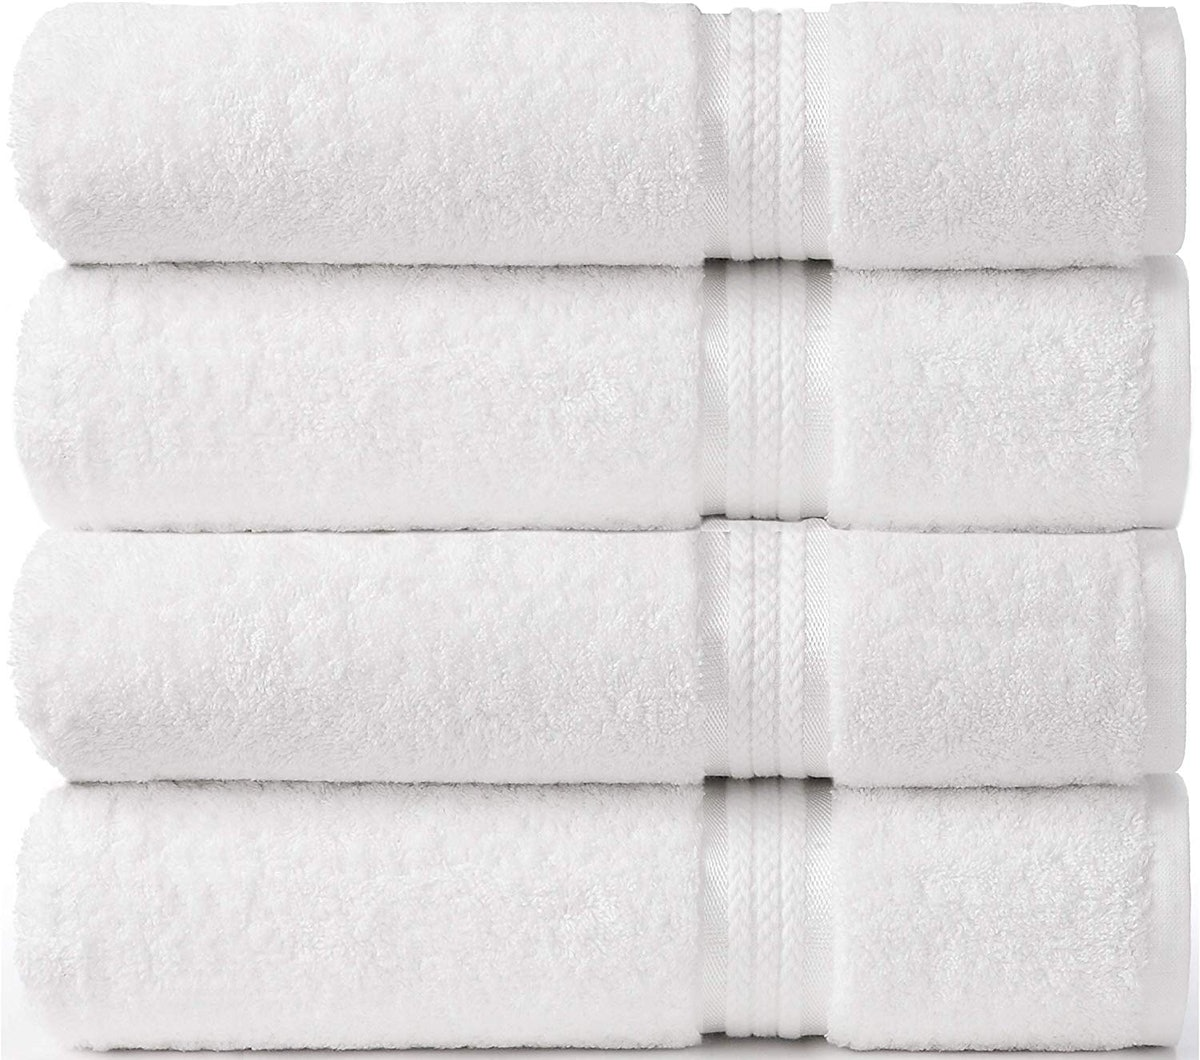 Cotton Craft Ultra Soft Extra Large Bath Towels (4 Pack)